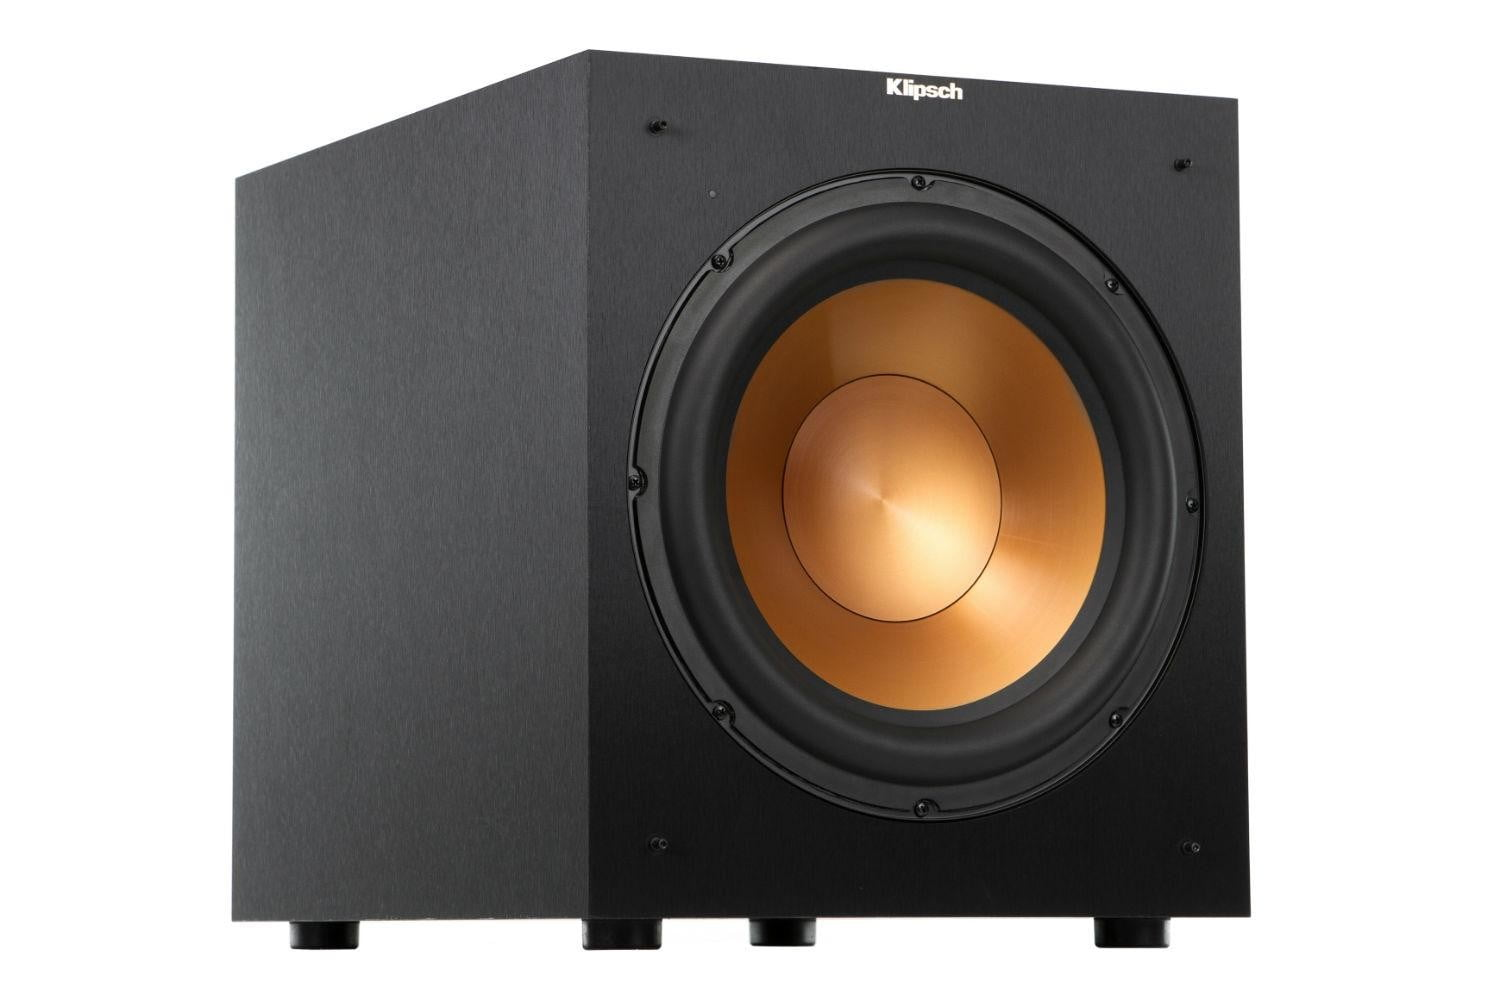 klipsch unveils stockpile new speakers reference home theater line r 12sw angle